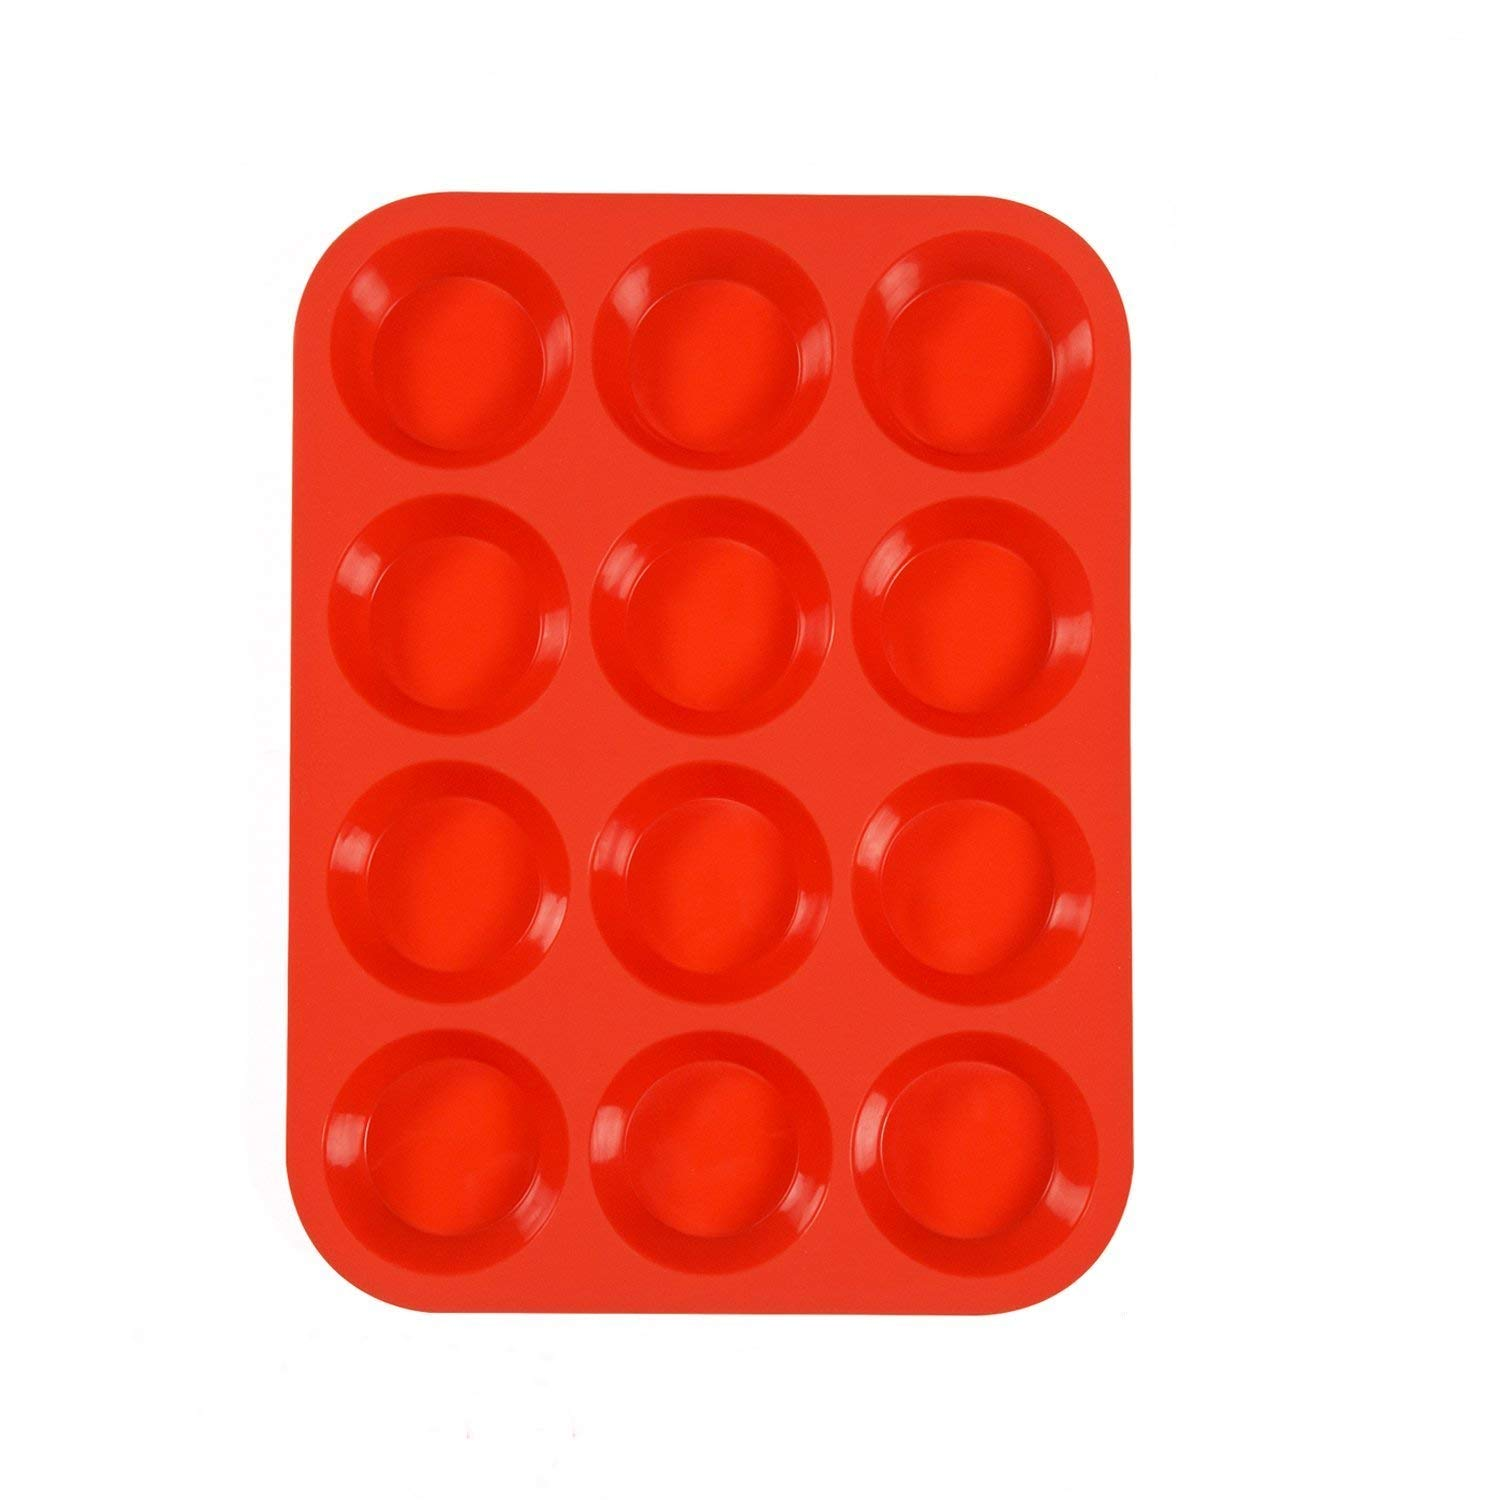 IPEC THERAPY 12 Cup Muffin Cupcake Baking Pan/Non - Stick Silicone Mold/Dishwasher - Microwave Safe, Red by IPEC THERAPY (Image #5)